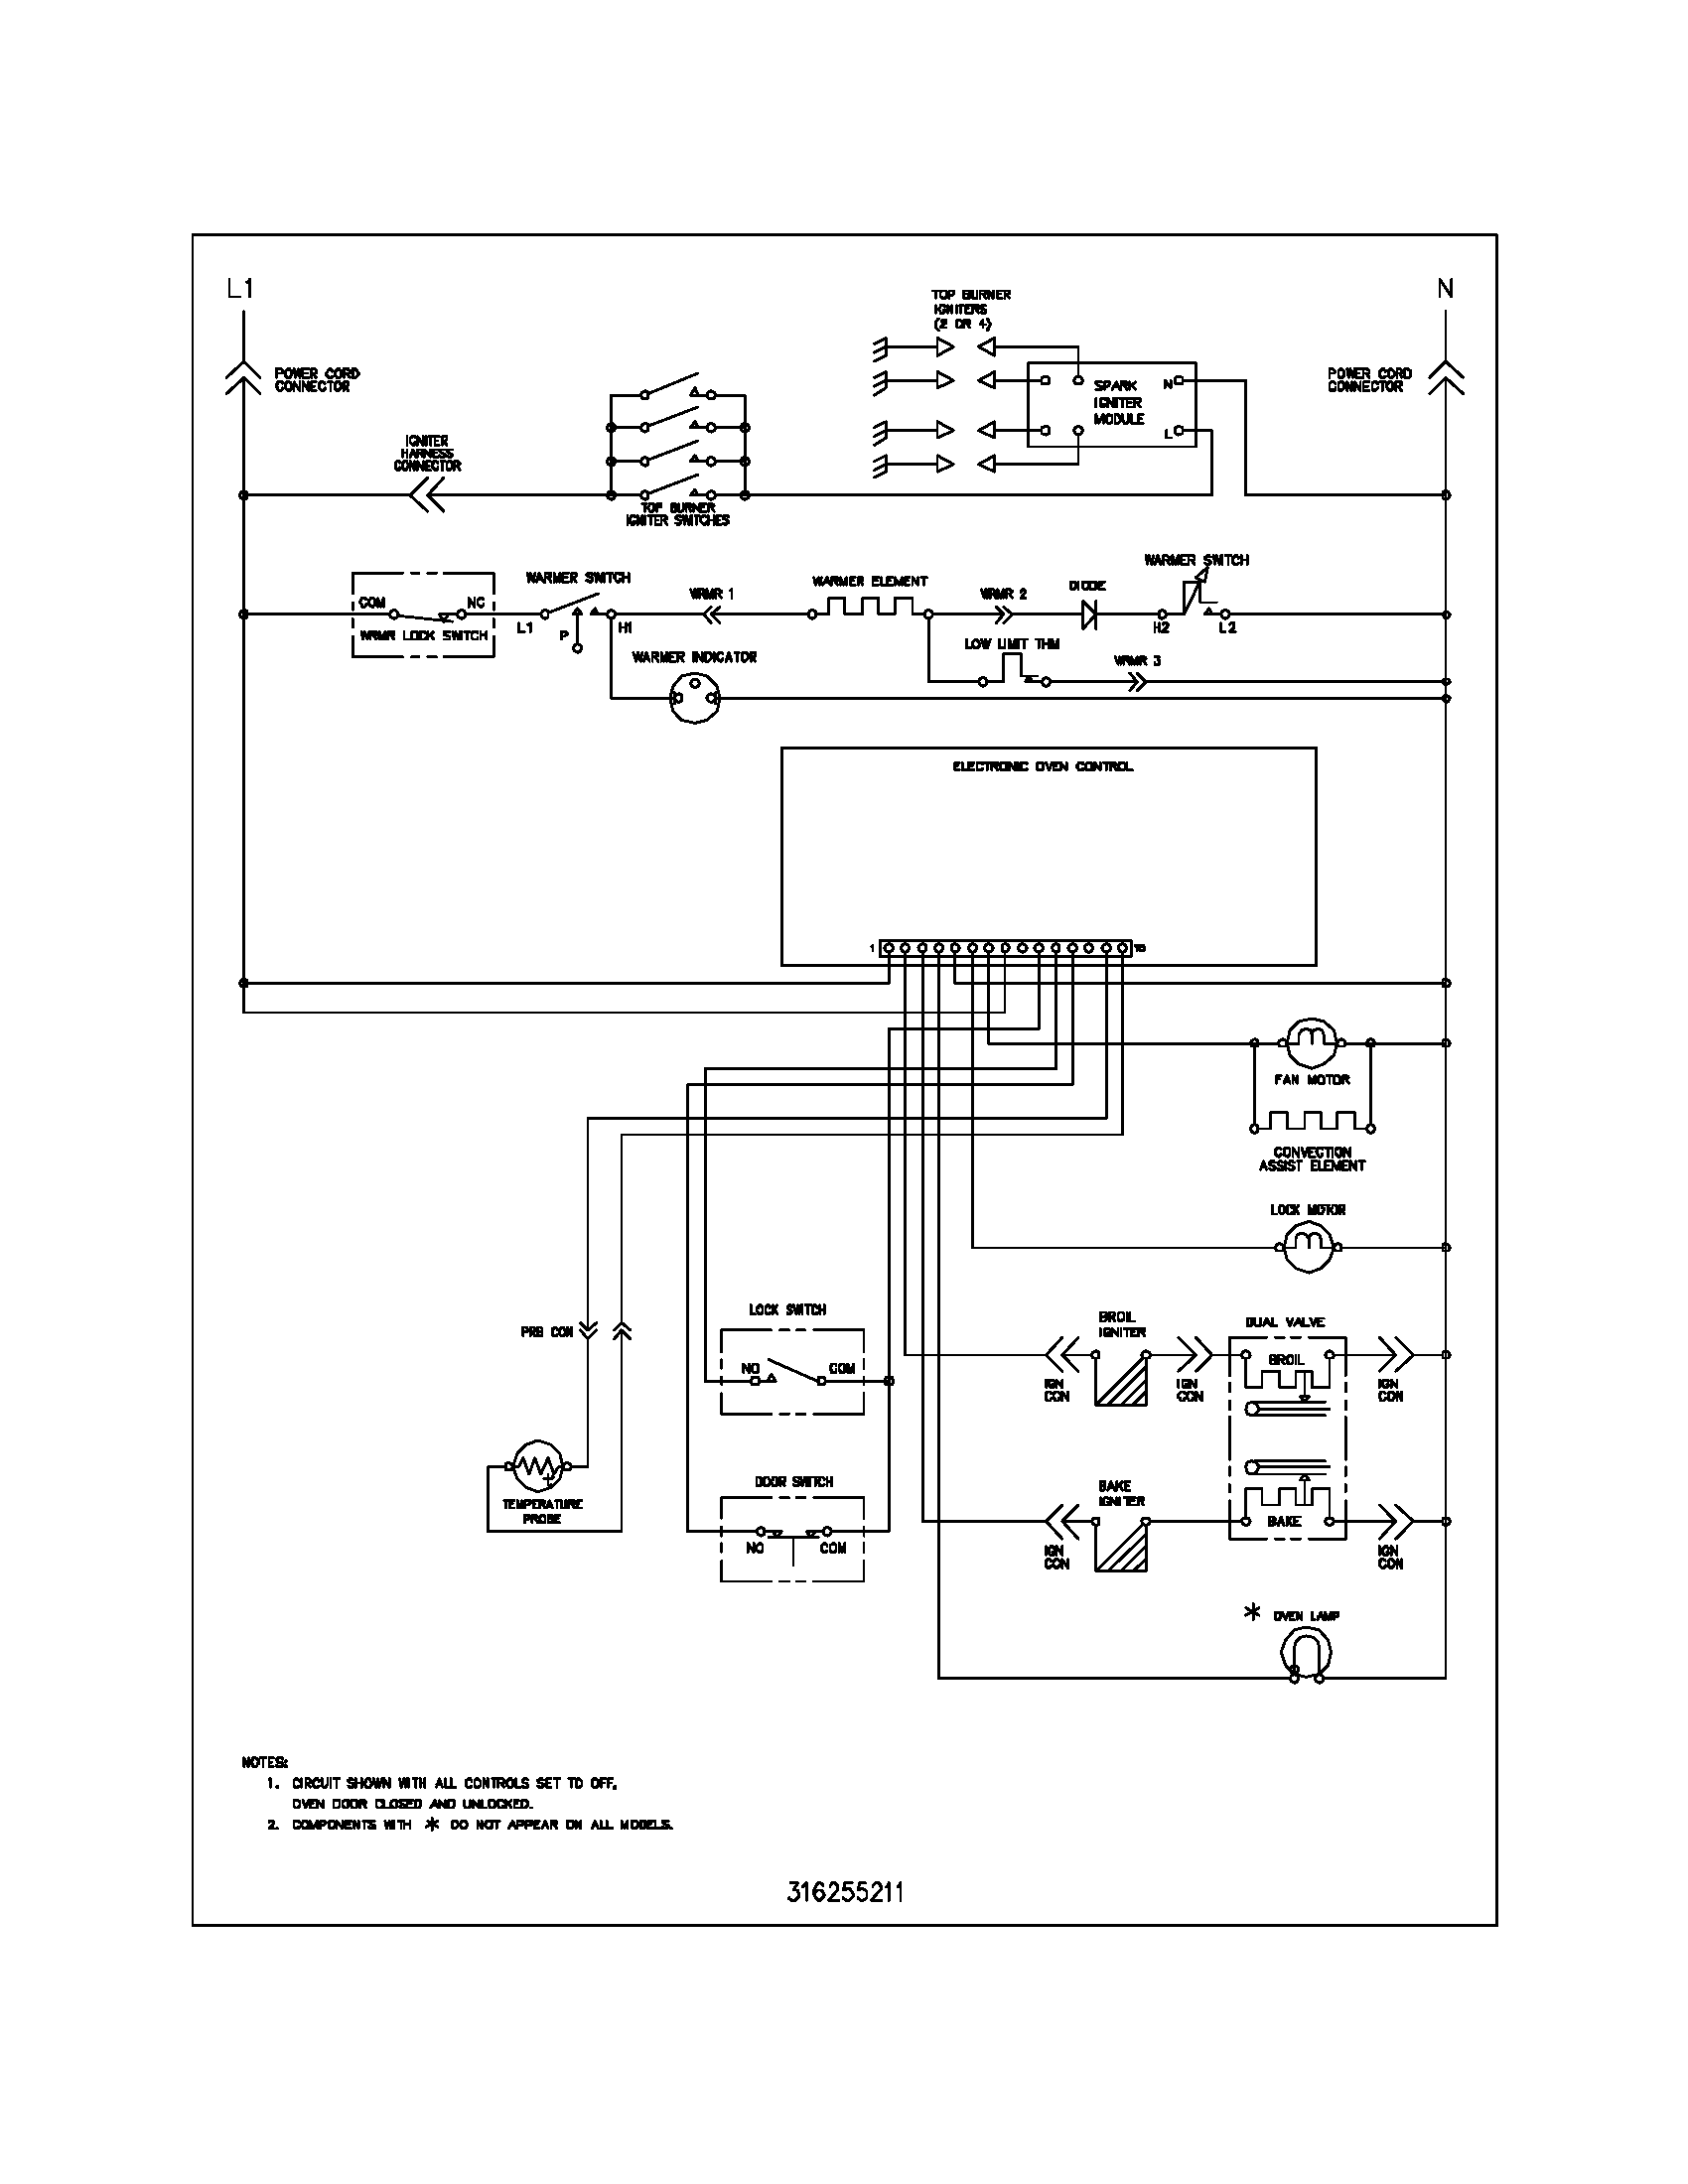 wiring schematic parts frigidaire plgf389ccc gas range timer stove clocks and appliance Rheem Thermostat Wiring at gsmportal.co